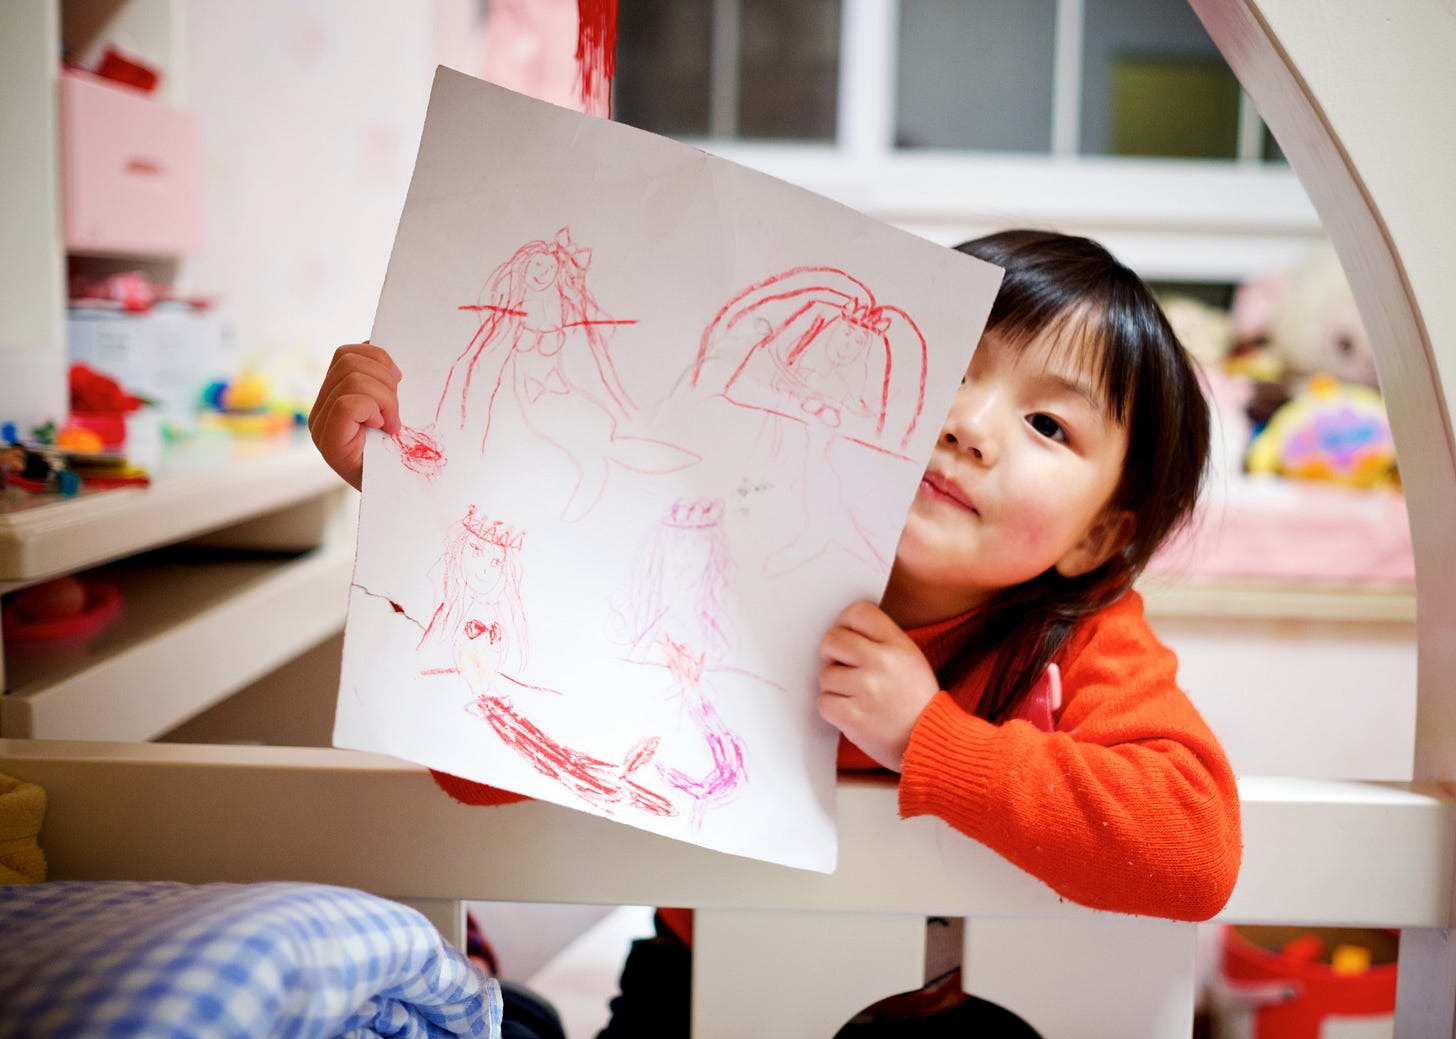 preschool asian girl holding up a crayon drawing of a mermaid